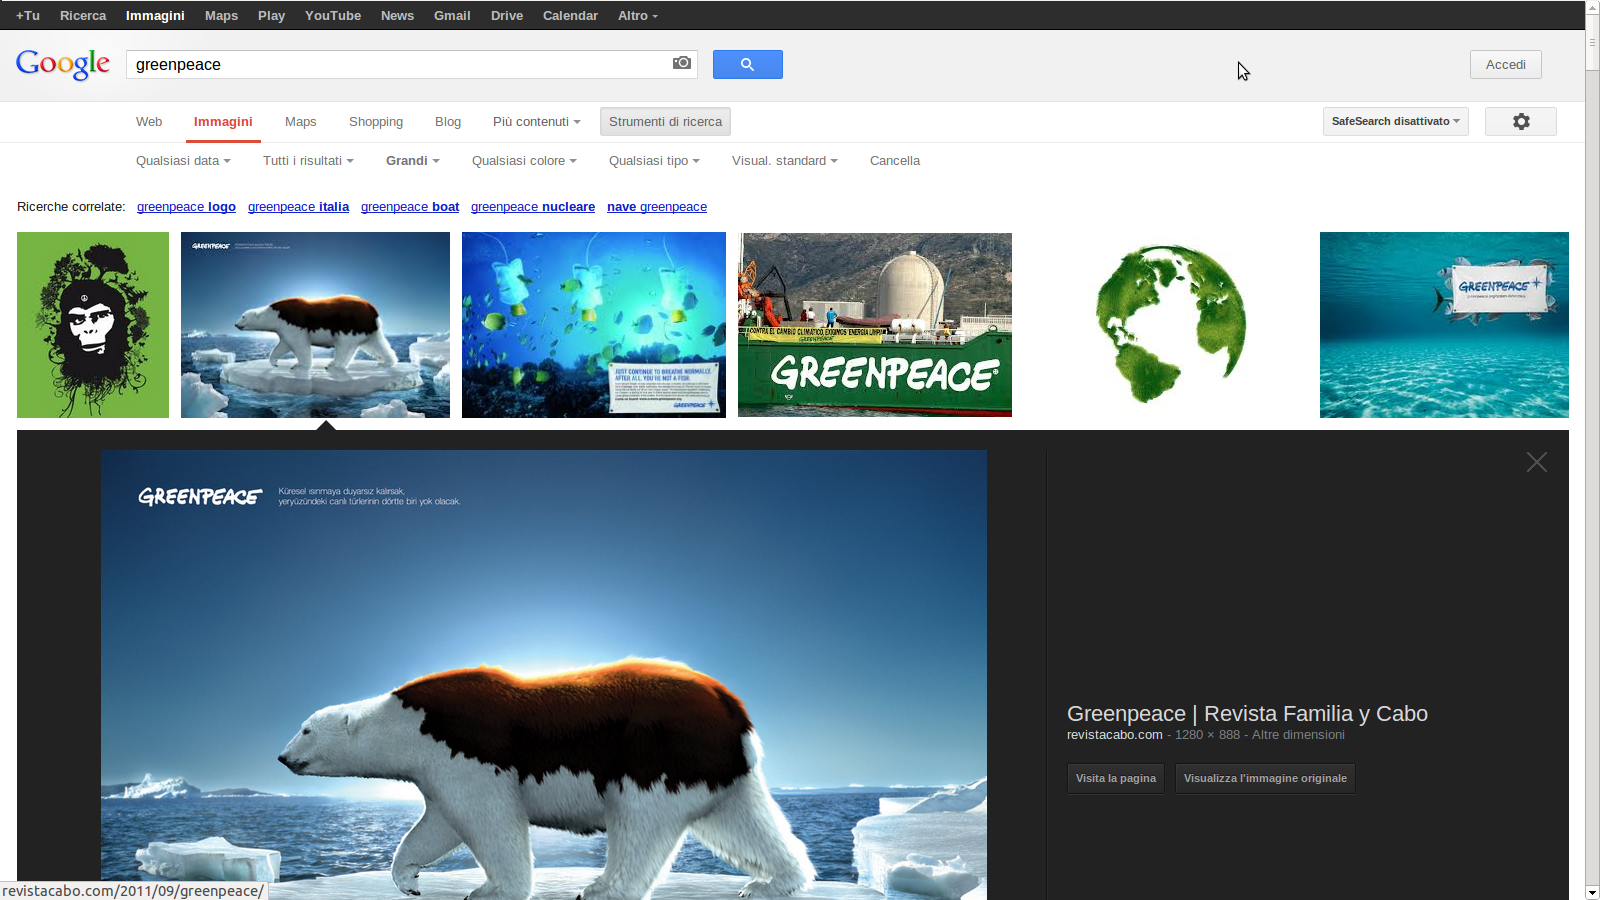 La GUI ridisegnata dell'interfaccia di Google Image Search